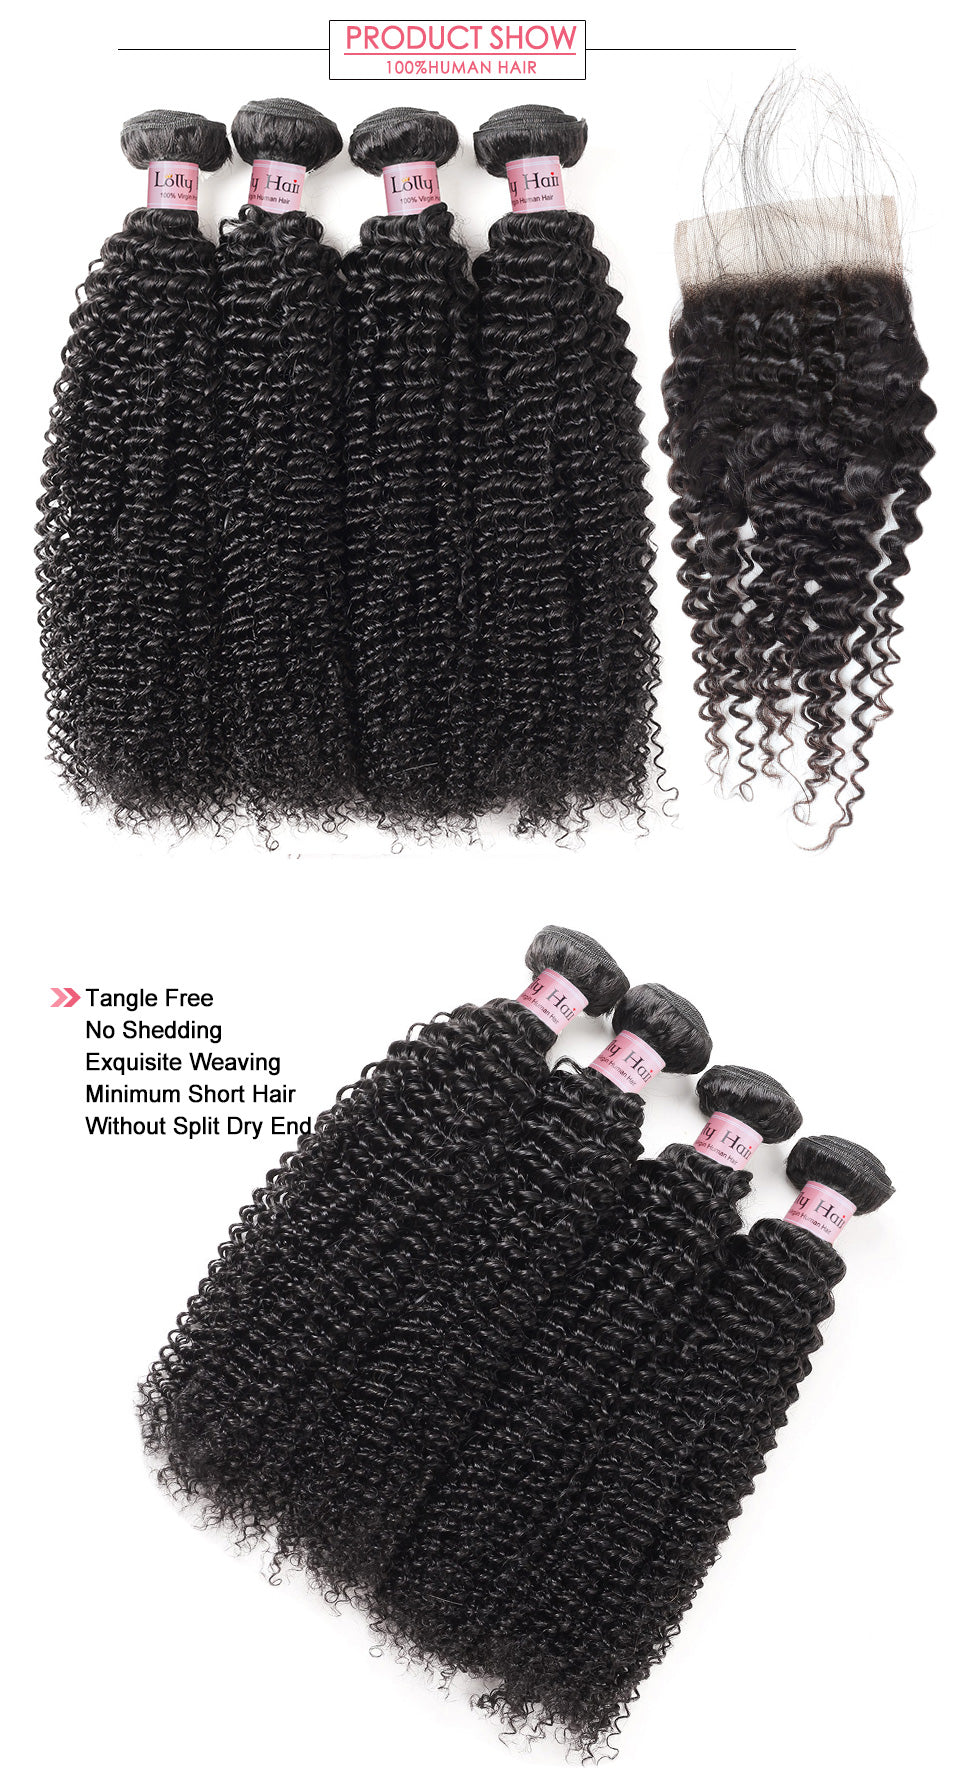 Lolly Malaysian Kinky Curly Hair 4 Bundles with Lace Closure